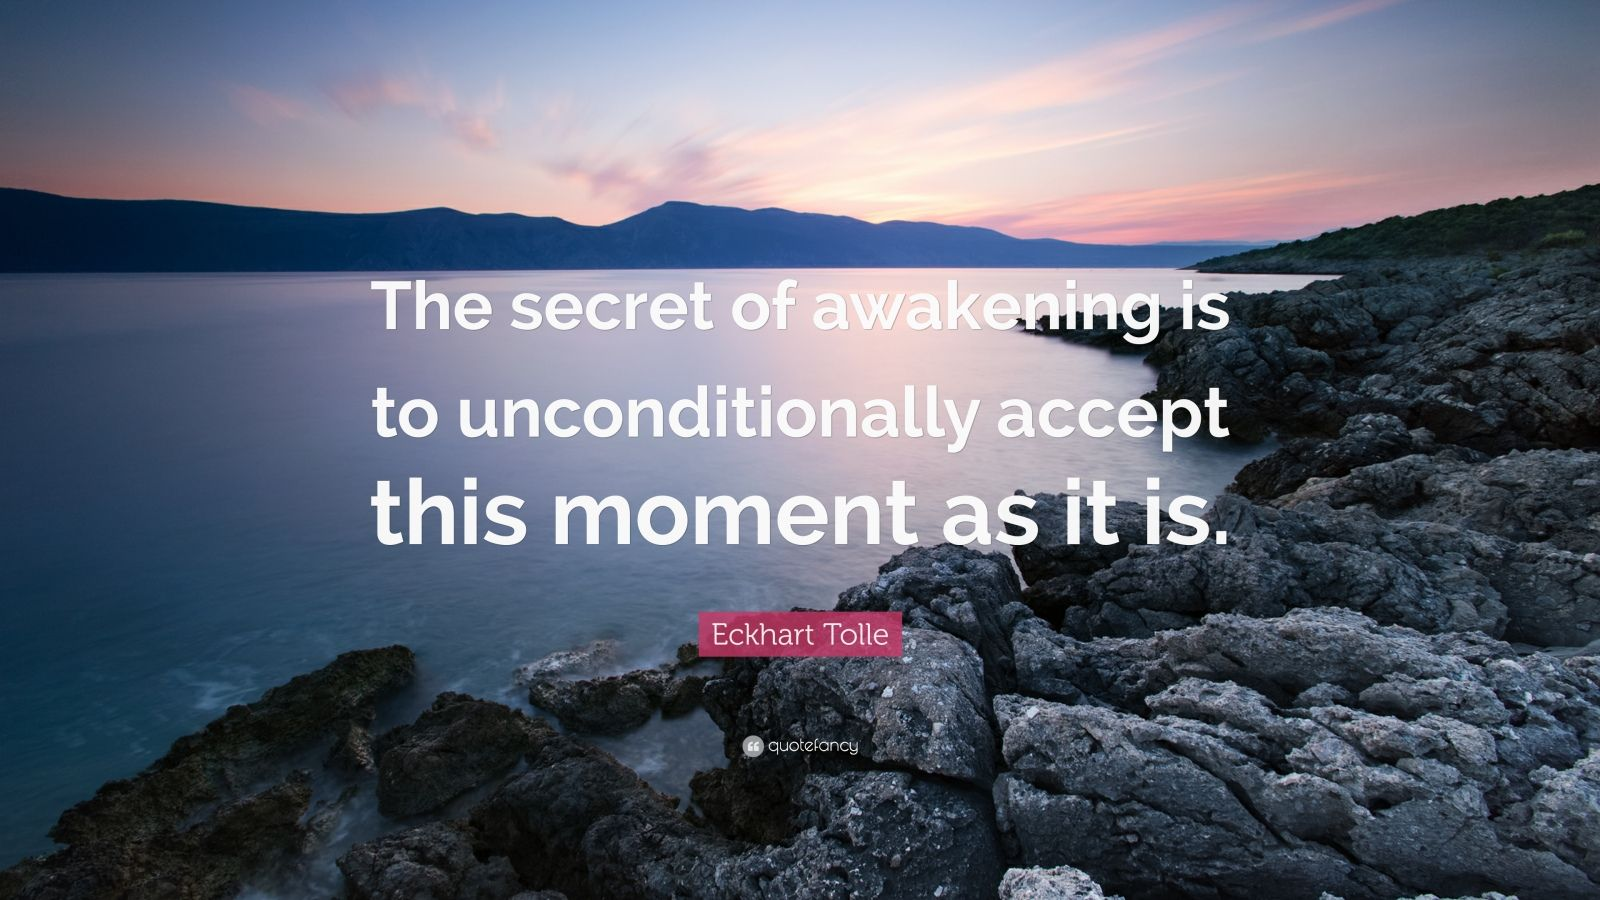 """Eckhart Tolle Quote: """"The secret of awakening is to unconditionally accept this moment as it is."""""""